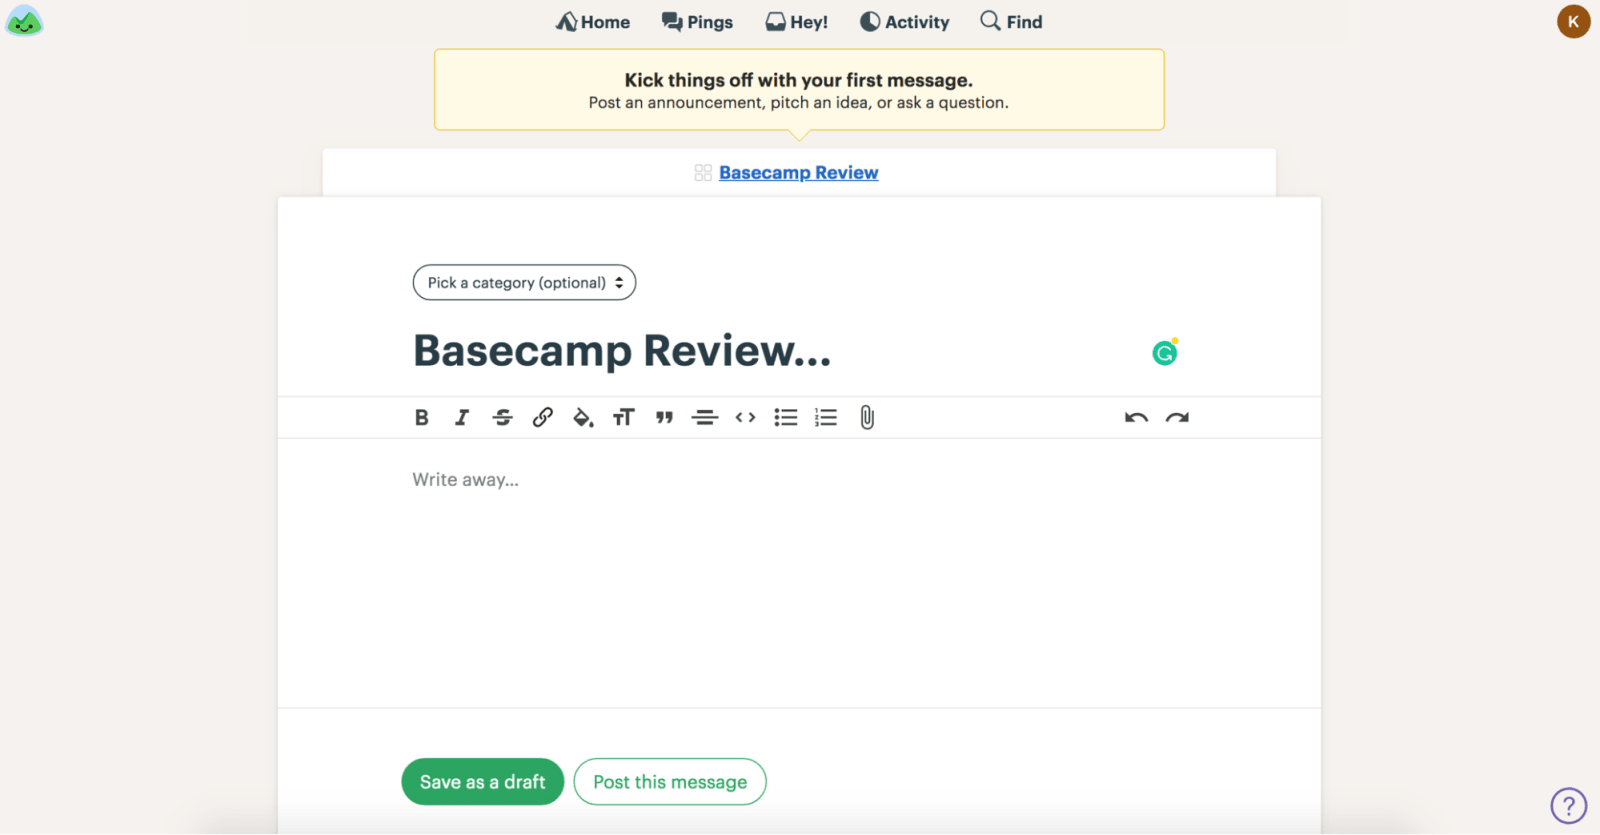 Basecamp Review Specifying Privacy Settings